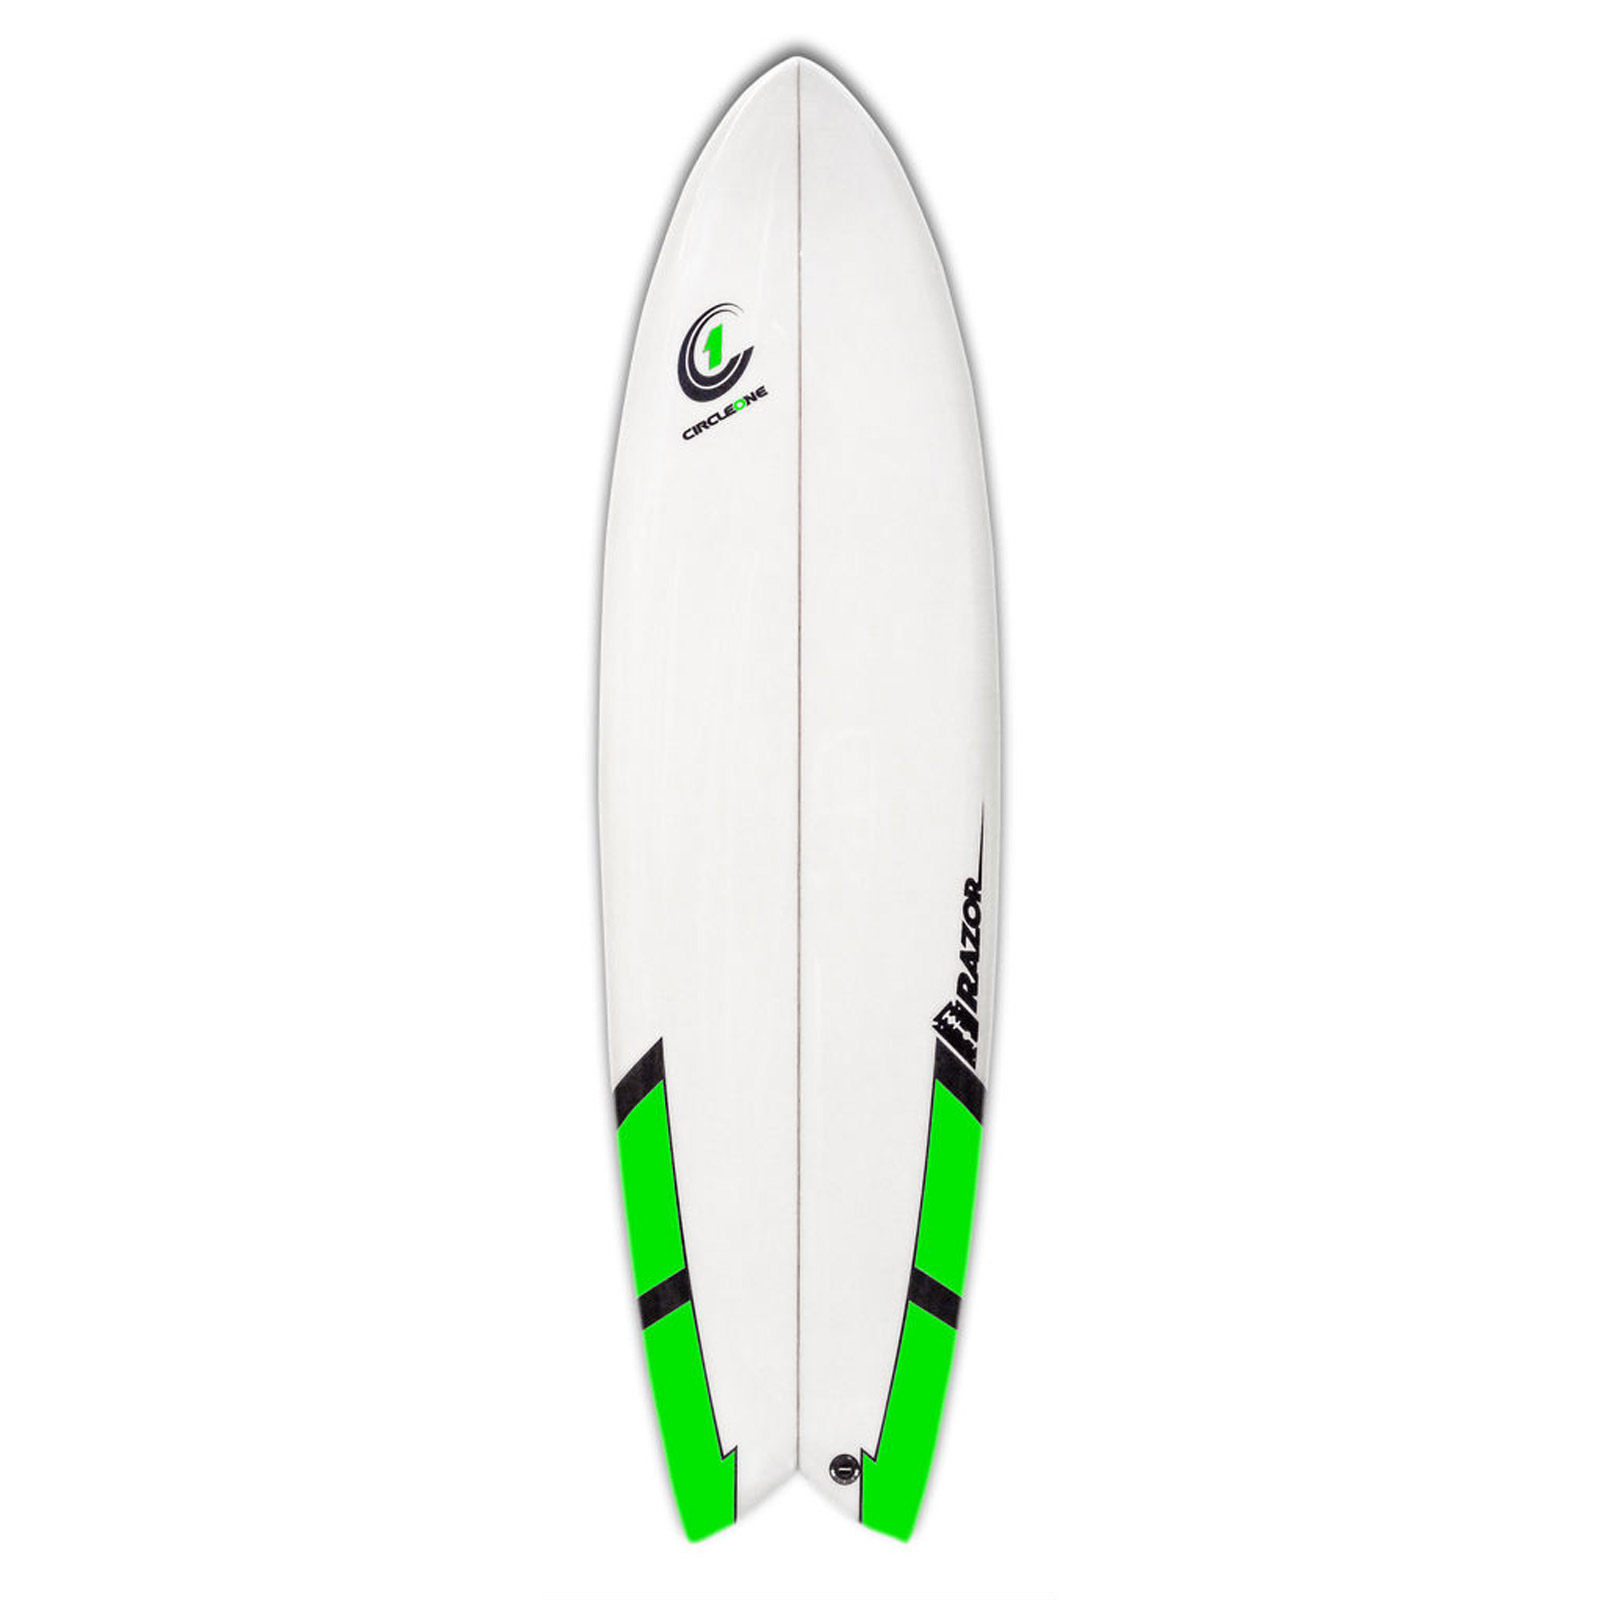 6ft 6inch razor series fish tail shortboard surfboard ebay